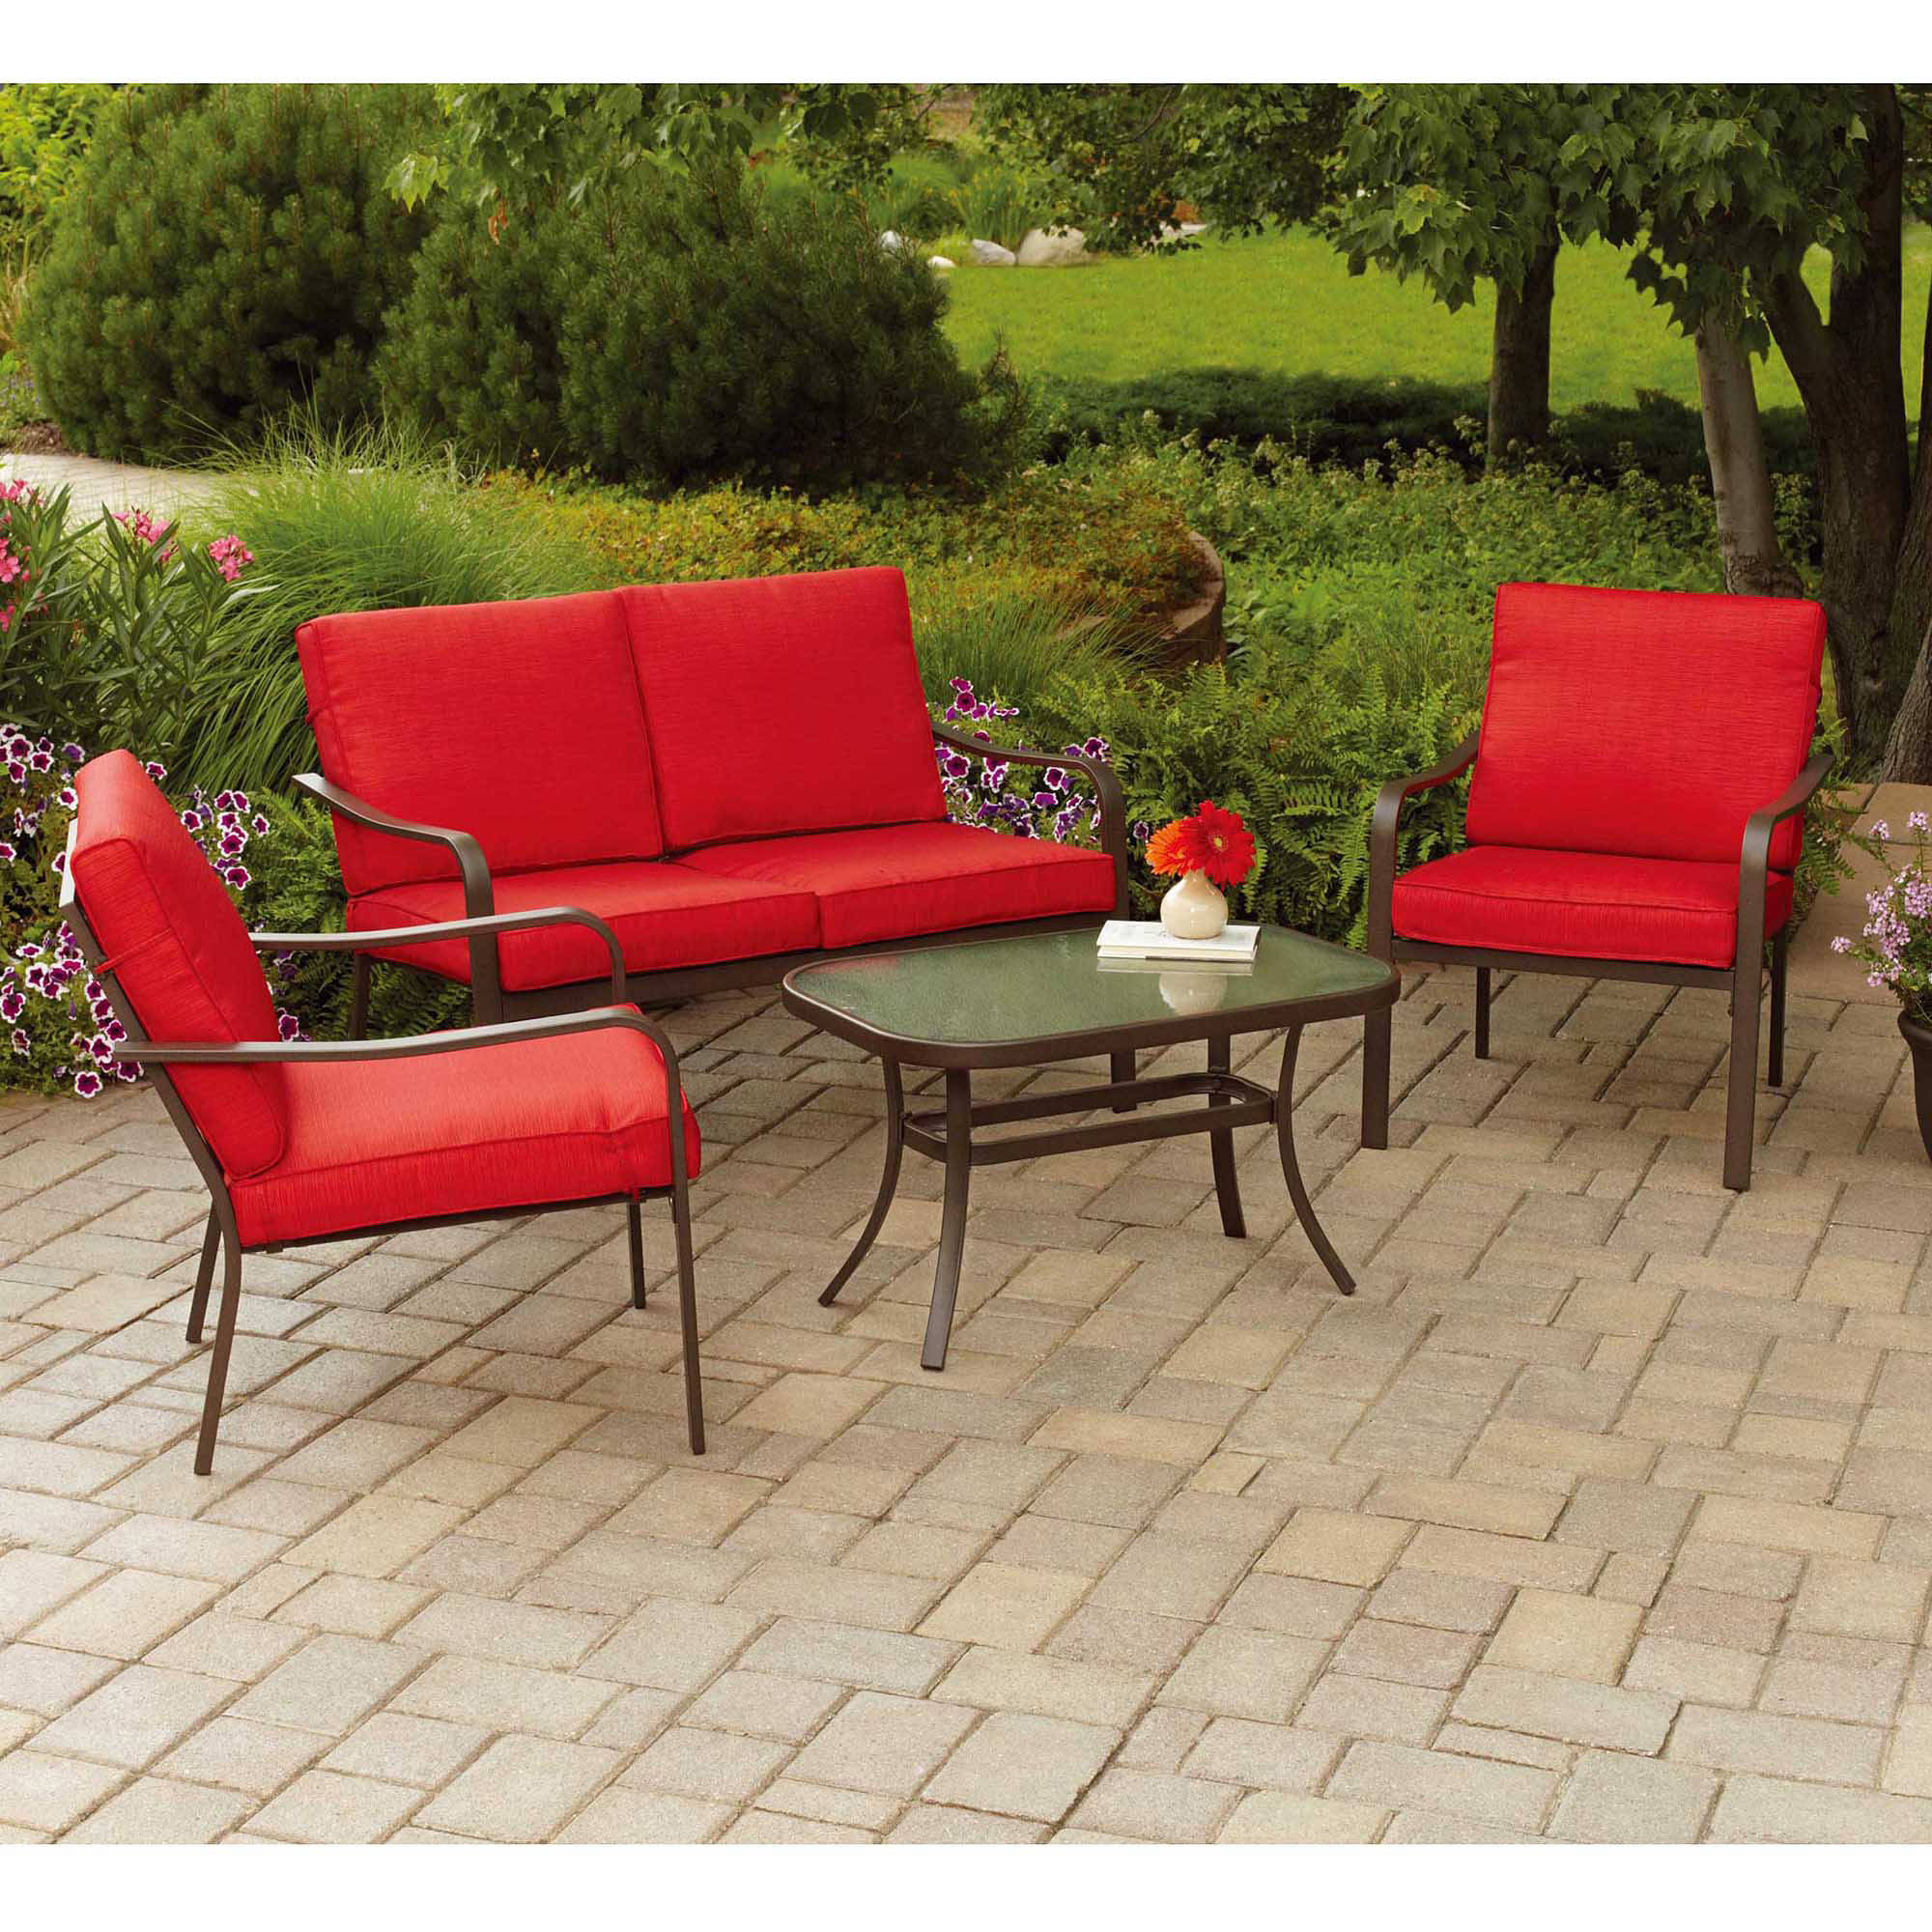 Mainstays Stanton Cushioned 4-Piece Patio Conversation Set, Red ...